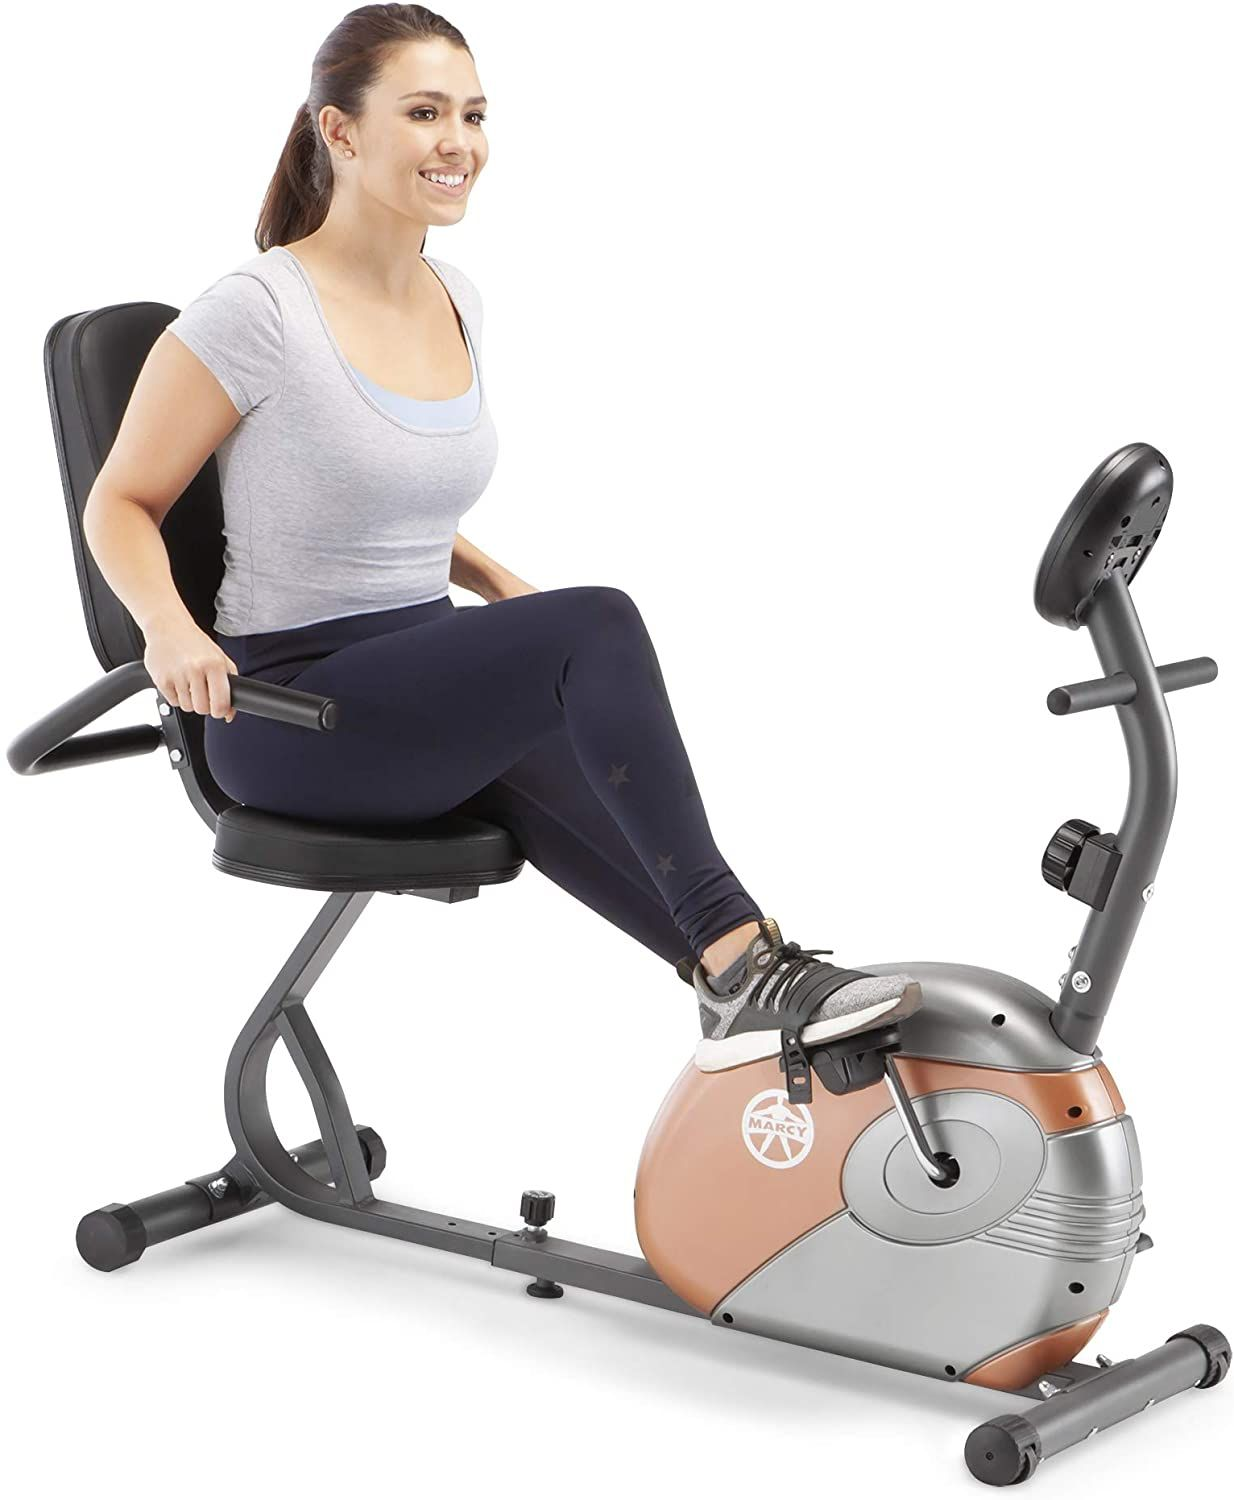 Marcy Recumbent Exercise Bike With Resistance Me 709 Review In 2020 Recumbent Bike Workout Biking Workout Best Exercise Bike